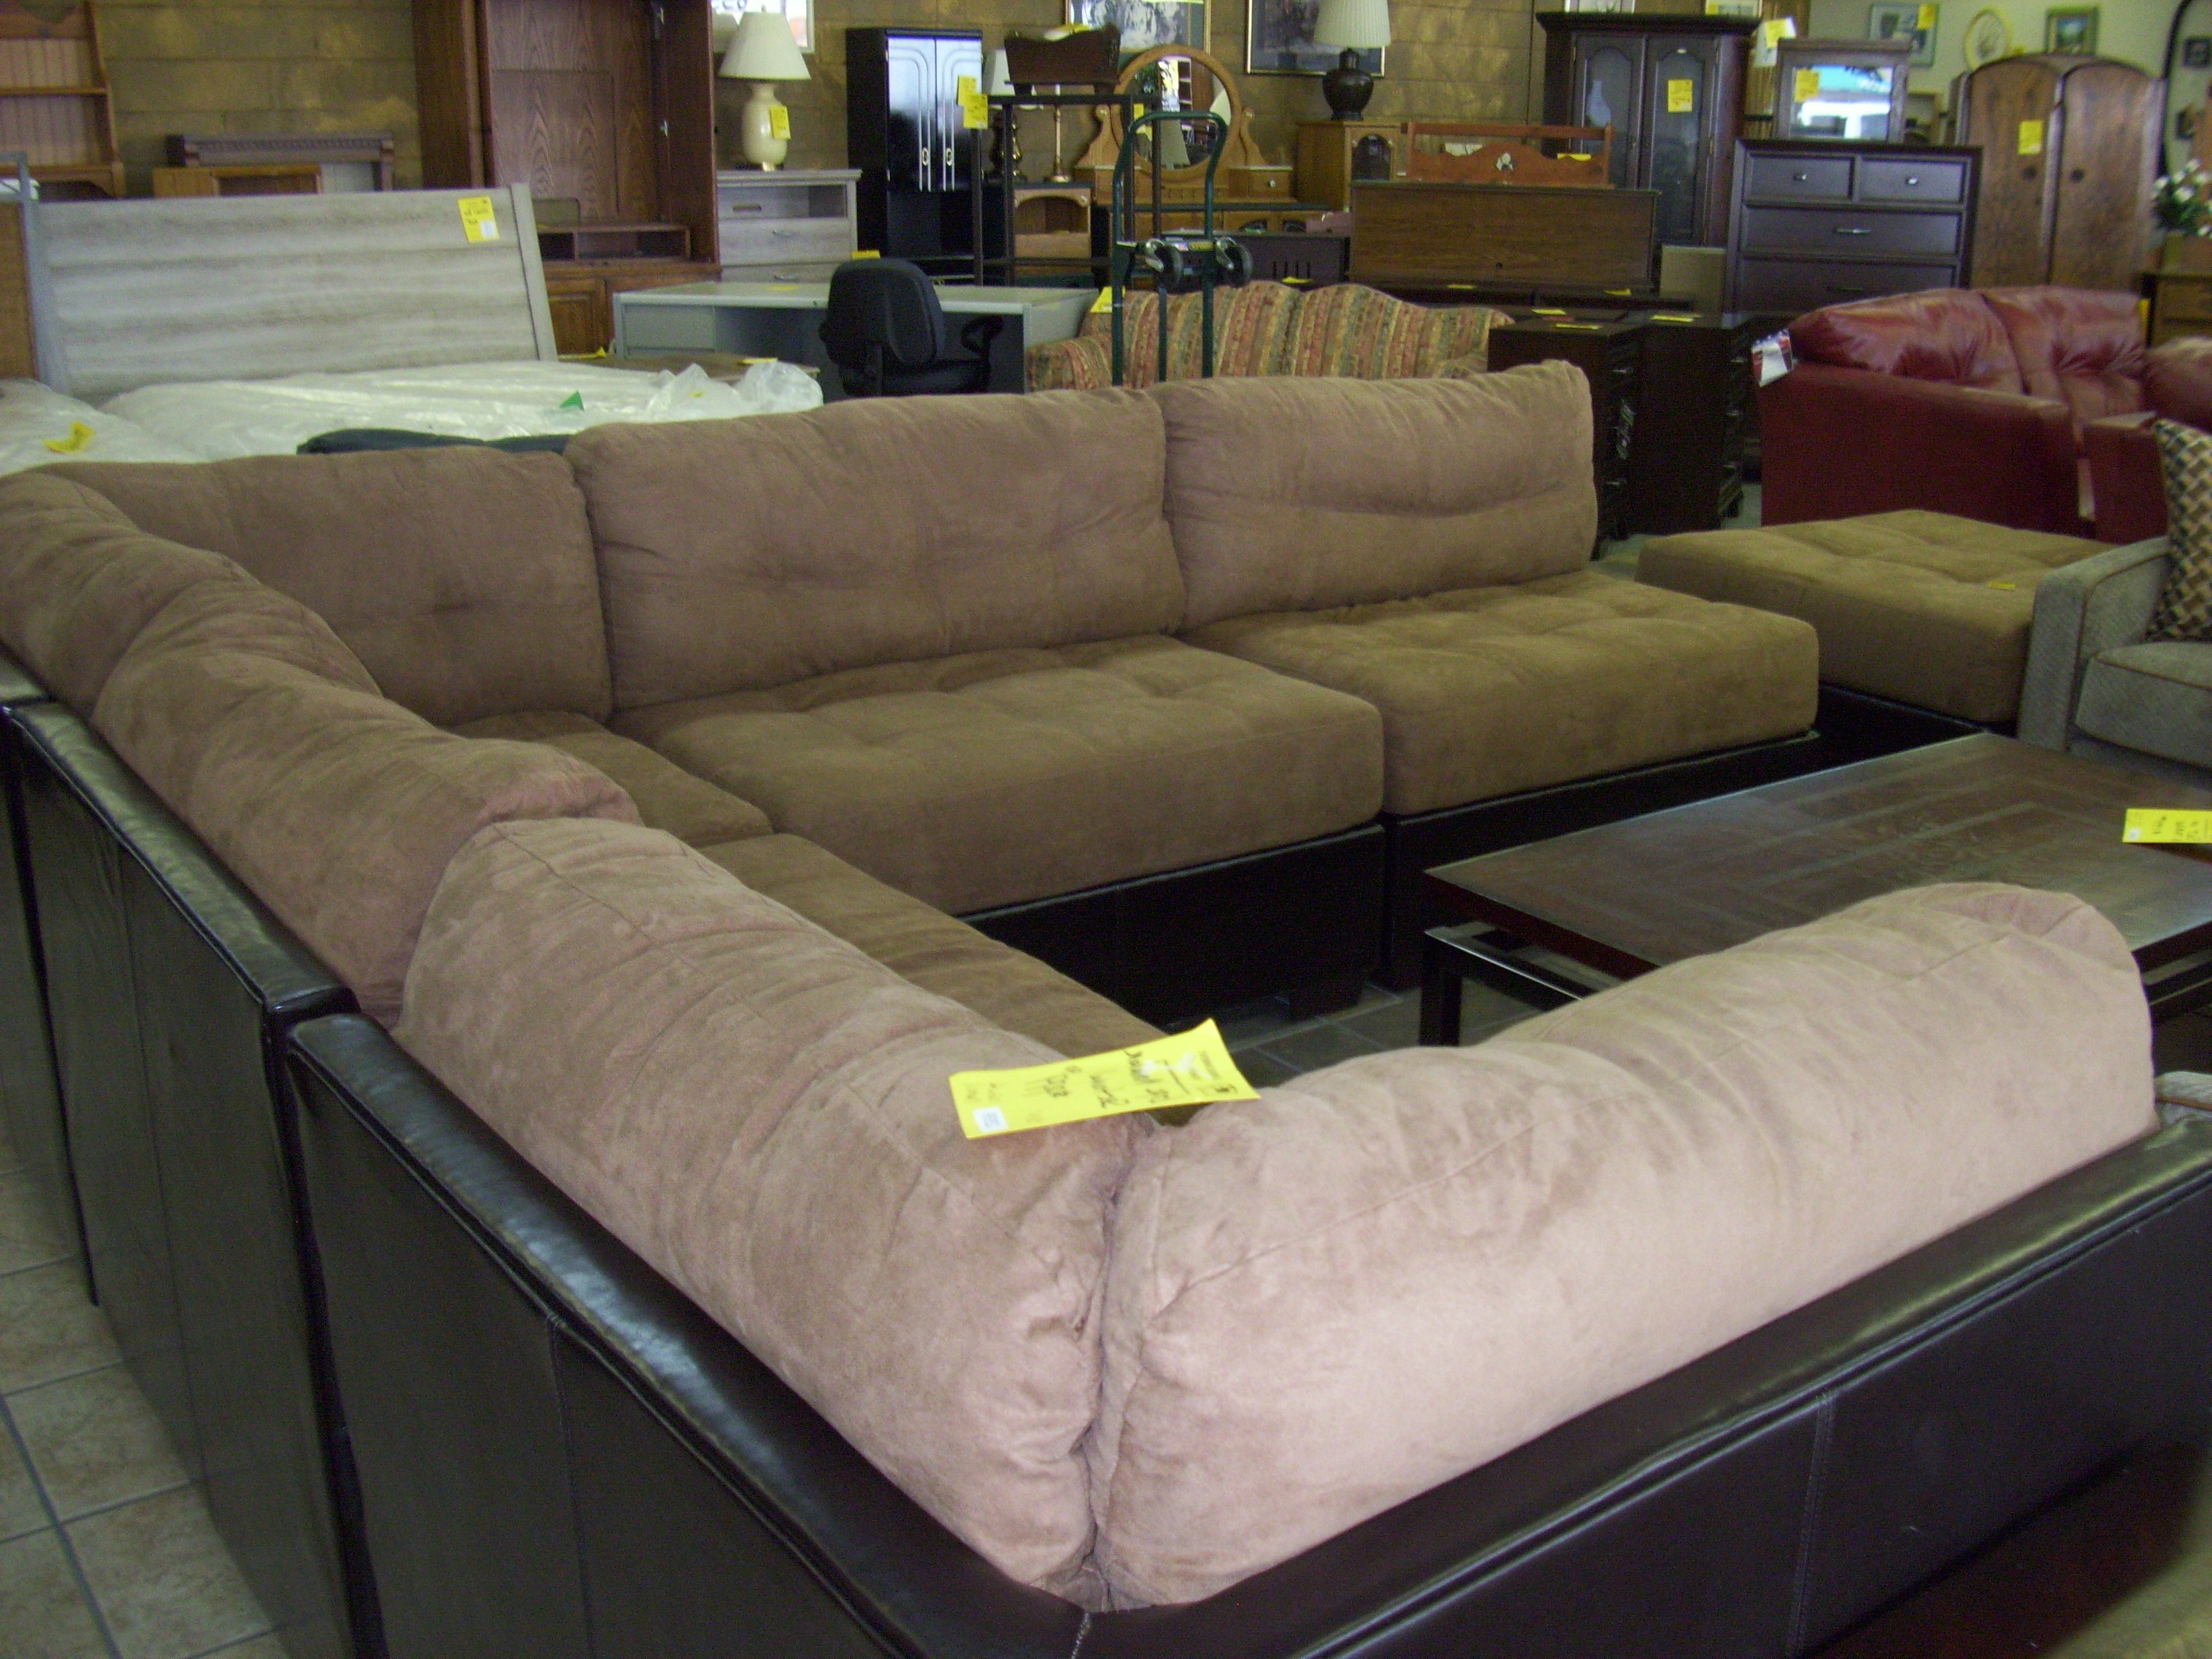 Famous 6 Piece Modular Sectional Sofa – Cleanupflorida Intended For Sectional Sofas In Toronto (View 15 of 20)